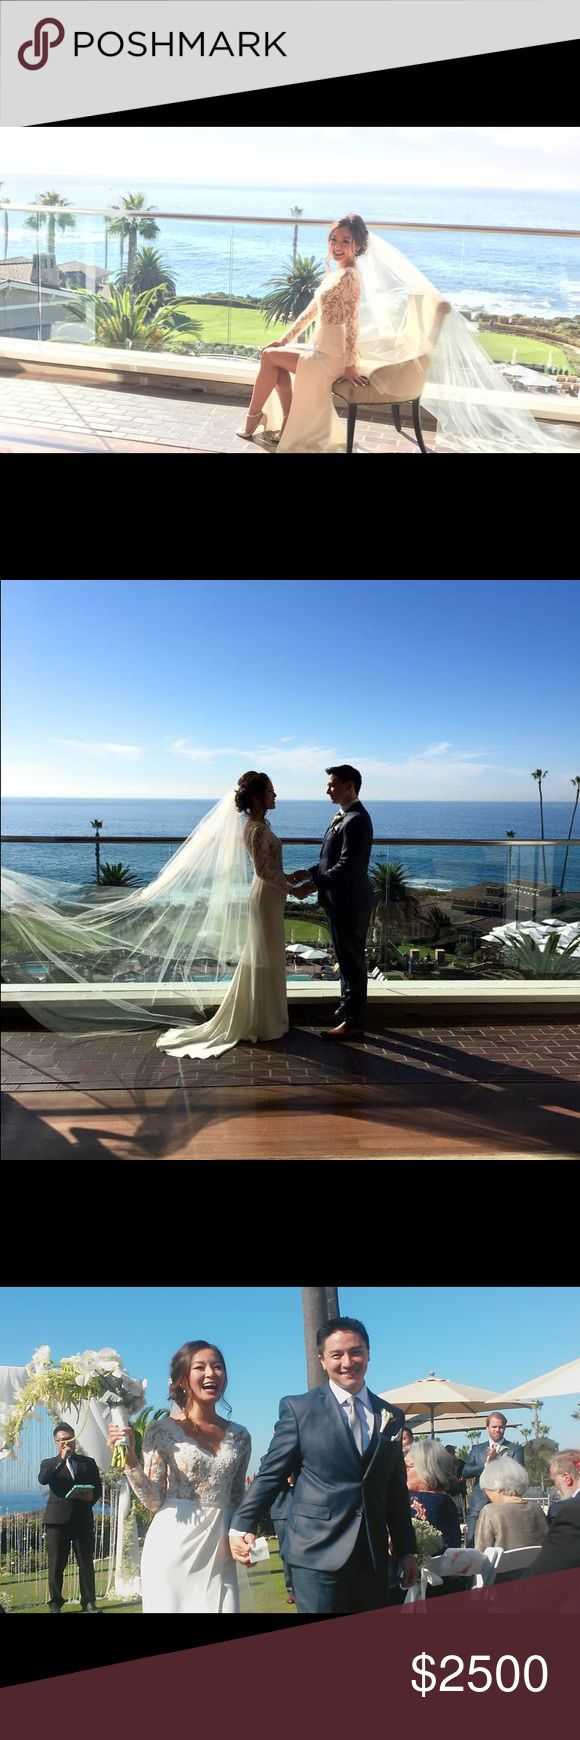 My wedding day ❤️️ The best day of my life just happened 11-13-16 at the Montage Laguna Beach.  I am selling my wedding dress, veil and wedding shoes.  But for now, please enjoy a little glimpse of our special day!  Message me if you're interested!  It's in the dry cleaning now, but will post once it comes back!  This was a custom gown designed by me!  There will only be this one in the world with French illusion lace with nude mesh lining on top, Italian crepe draped skirt lined w/ silk…